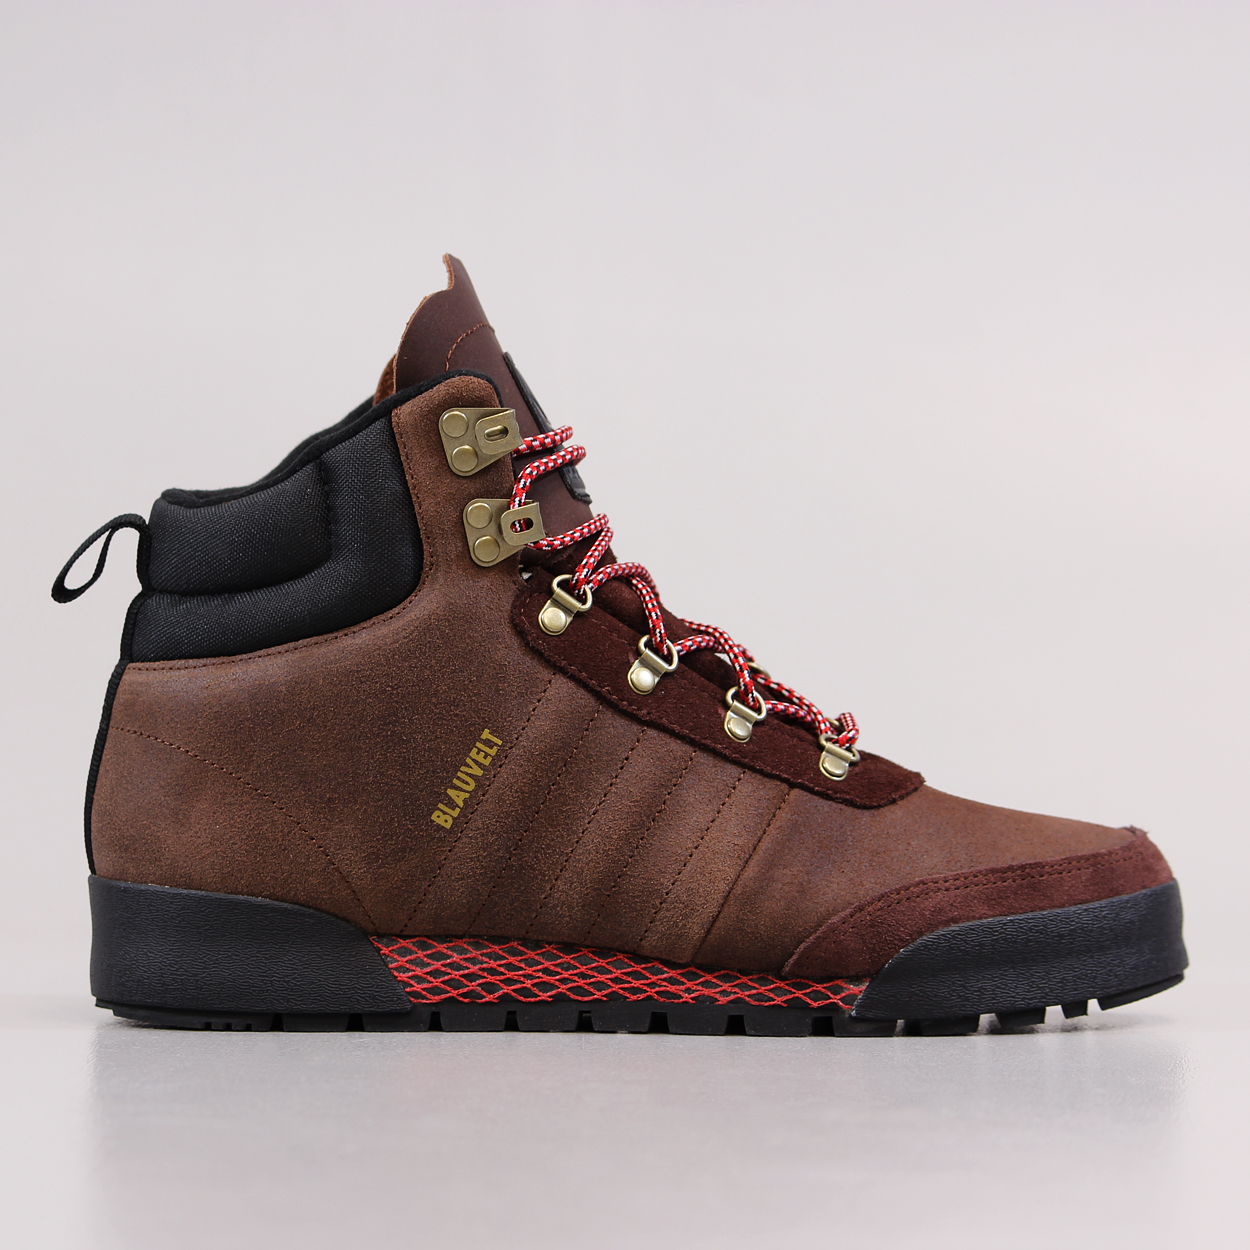 sports shoes 9e985 2b95d Adidas Blauvelt Skateboarding Mens Jake Boot 2.0 Shoes Brown Red £54.00